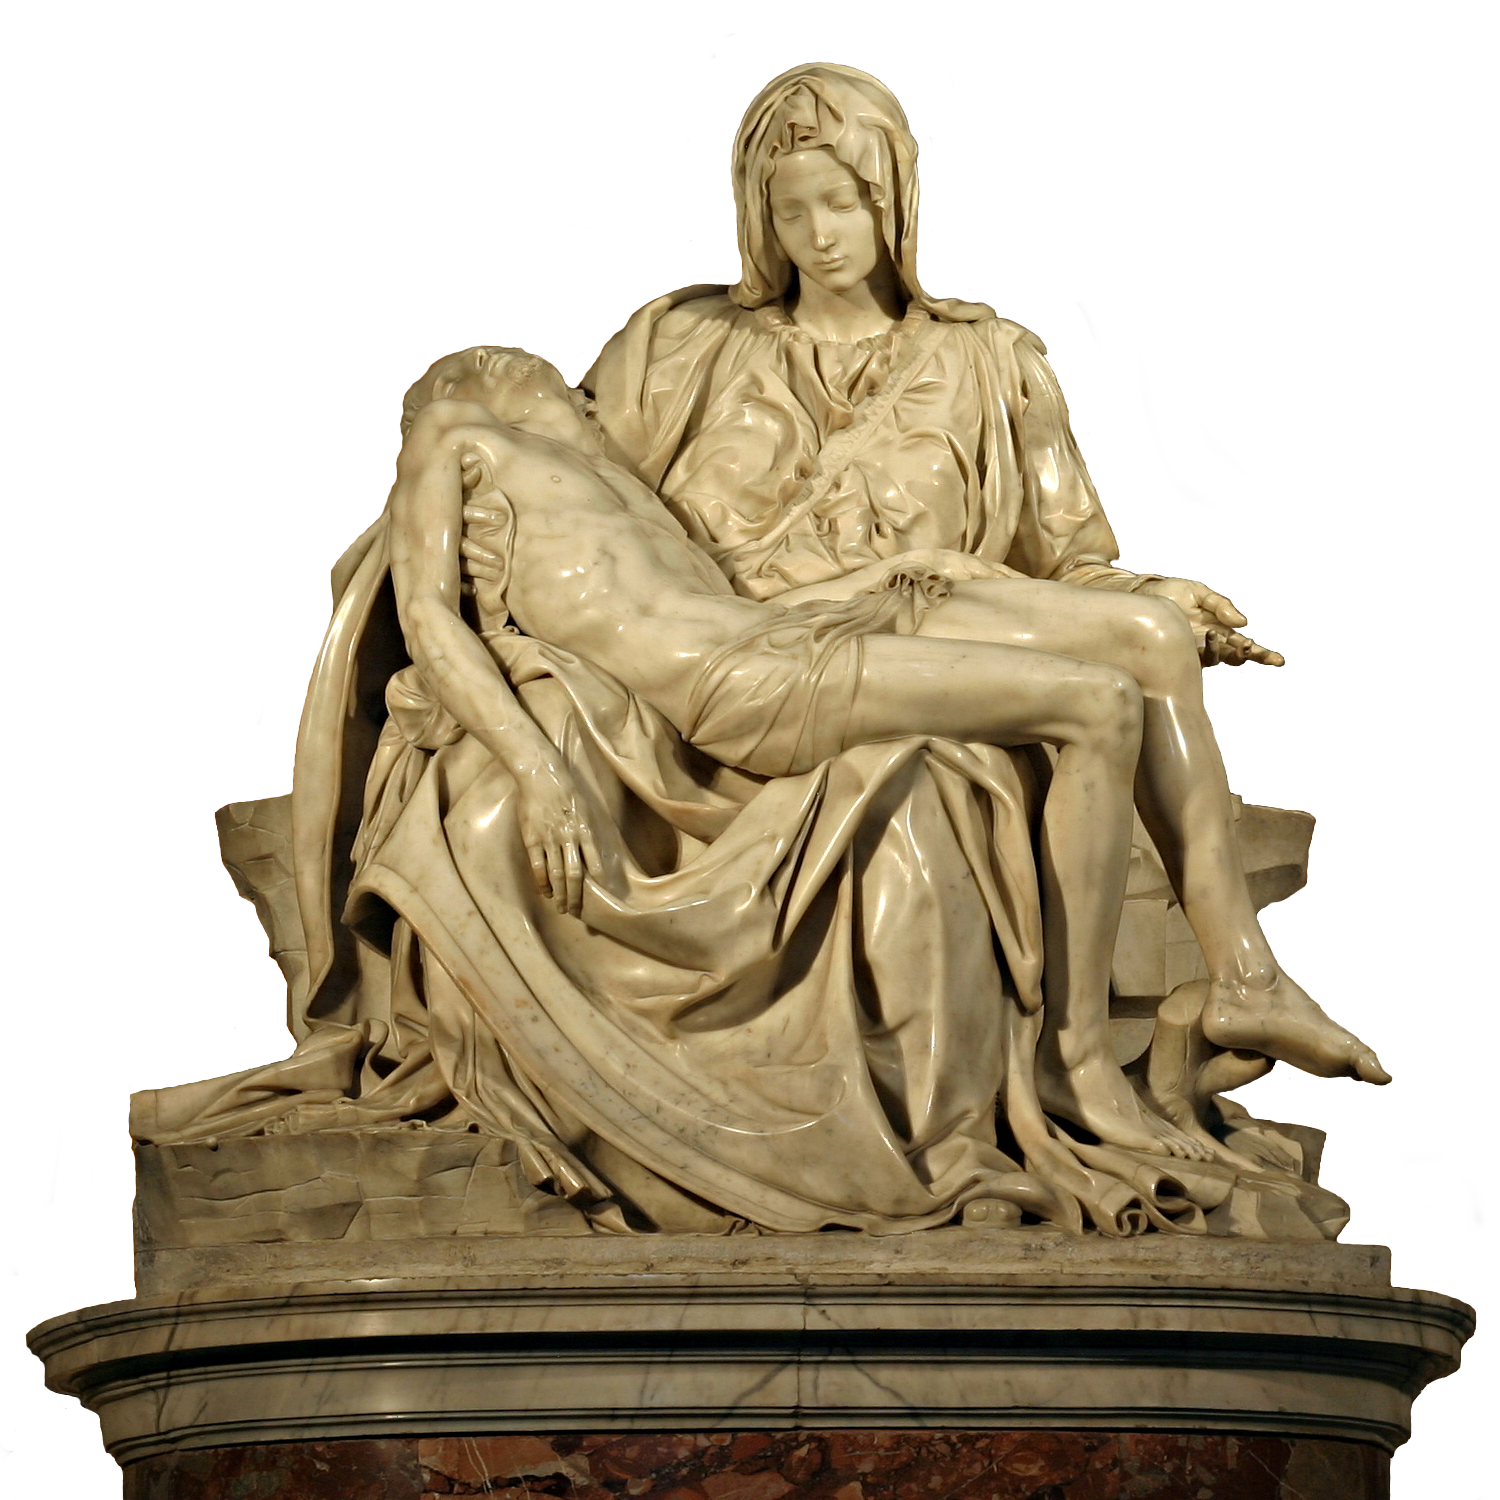 Michelangelo Png - File:Michelangelo's Pieta 5450 cut out.png - Wikimedia Commons